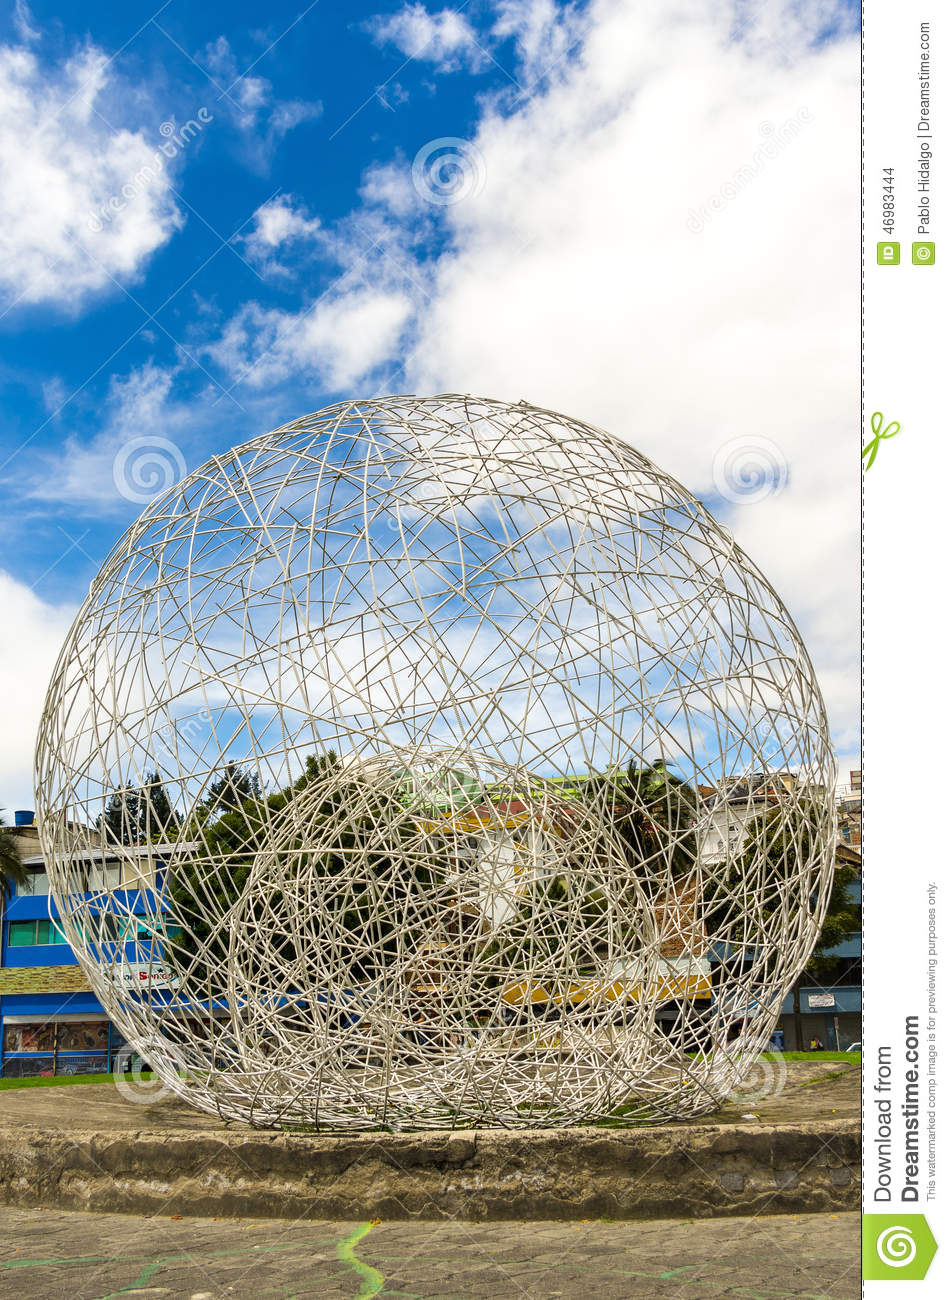 Sculptural Spheres Crazy Wonderful: Metal Sphere Sculpture Park In Quito Ecuador South Stock